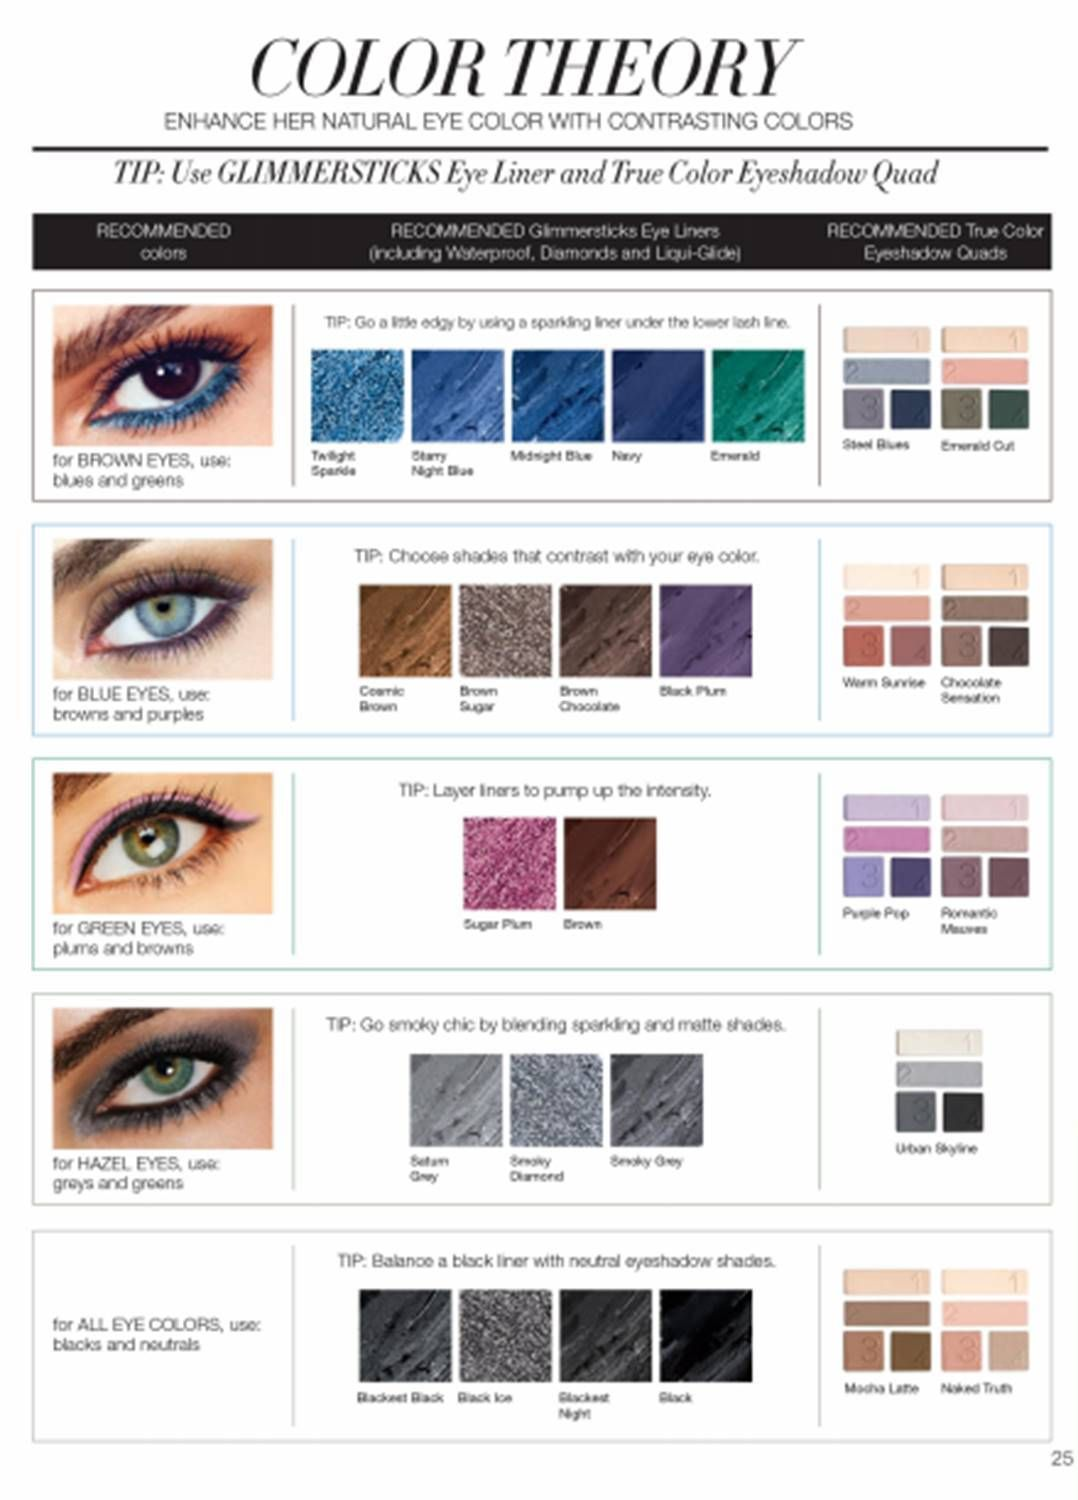 Use This Chart From Avon To Find An Eyeshadow And Eyeliner